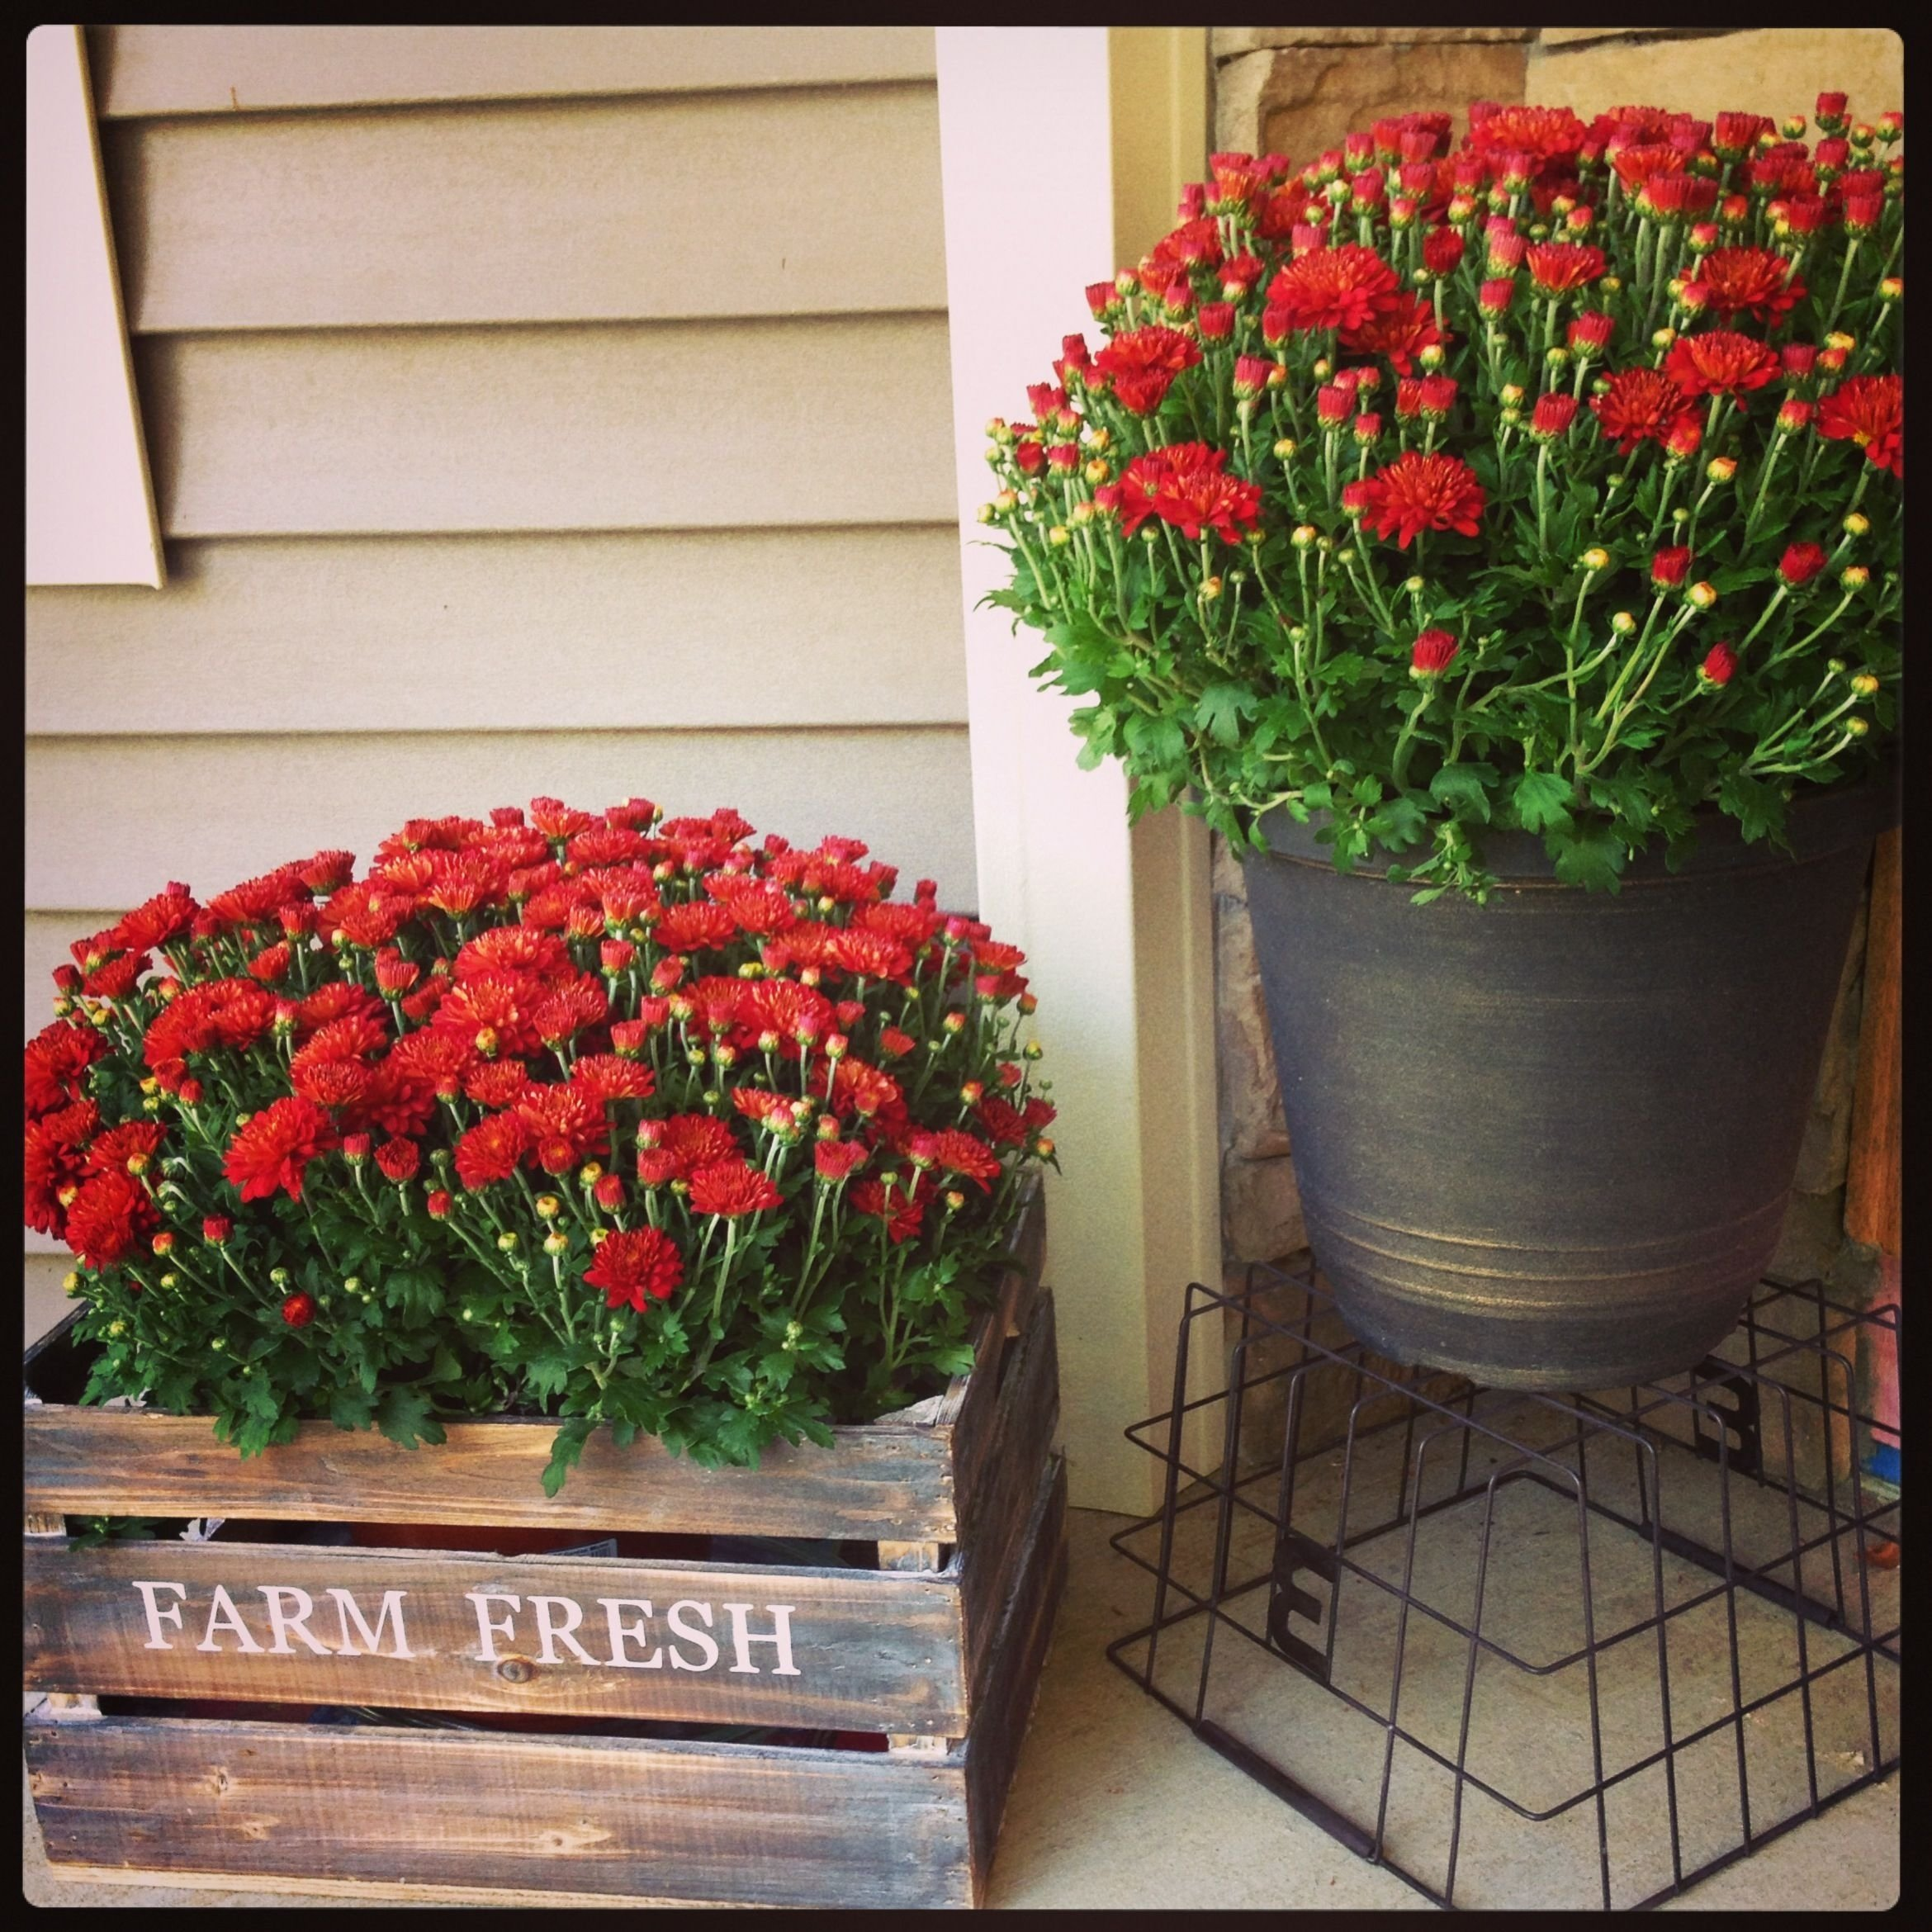 10 Fashionable Flower Pot Ideas For Front Porch 15 cheap and cute fall front porch decorating ideas front 2021